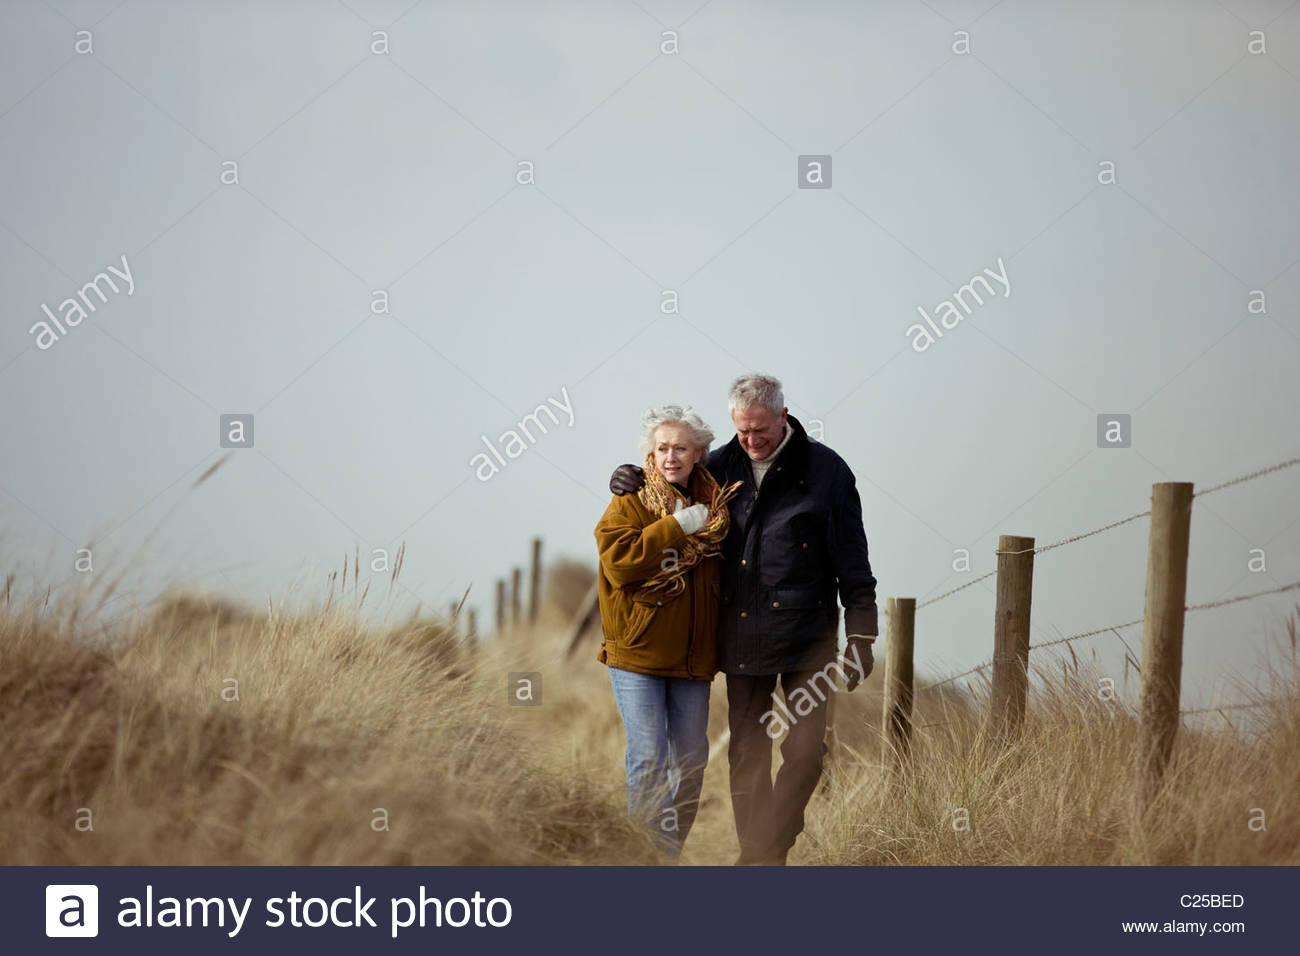 A senior couple walking along a path together - Stock Image